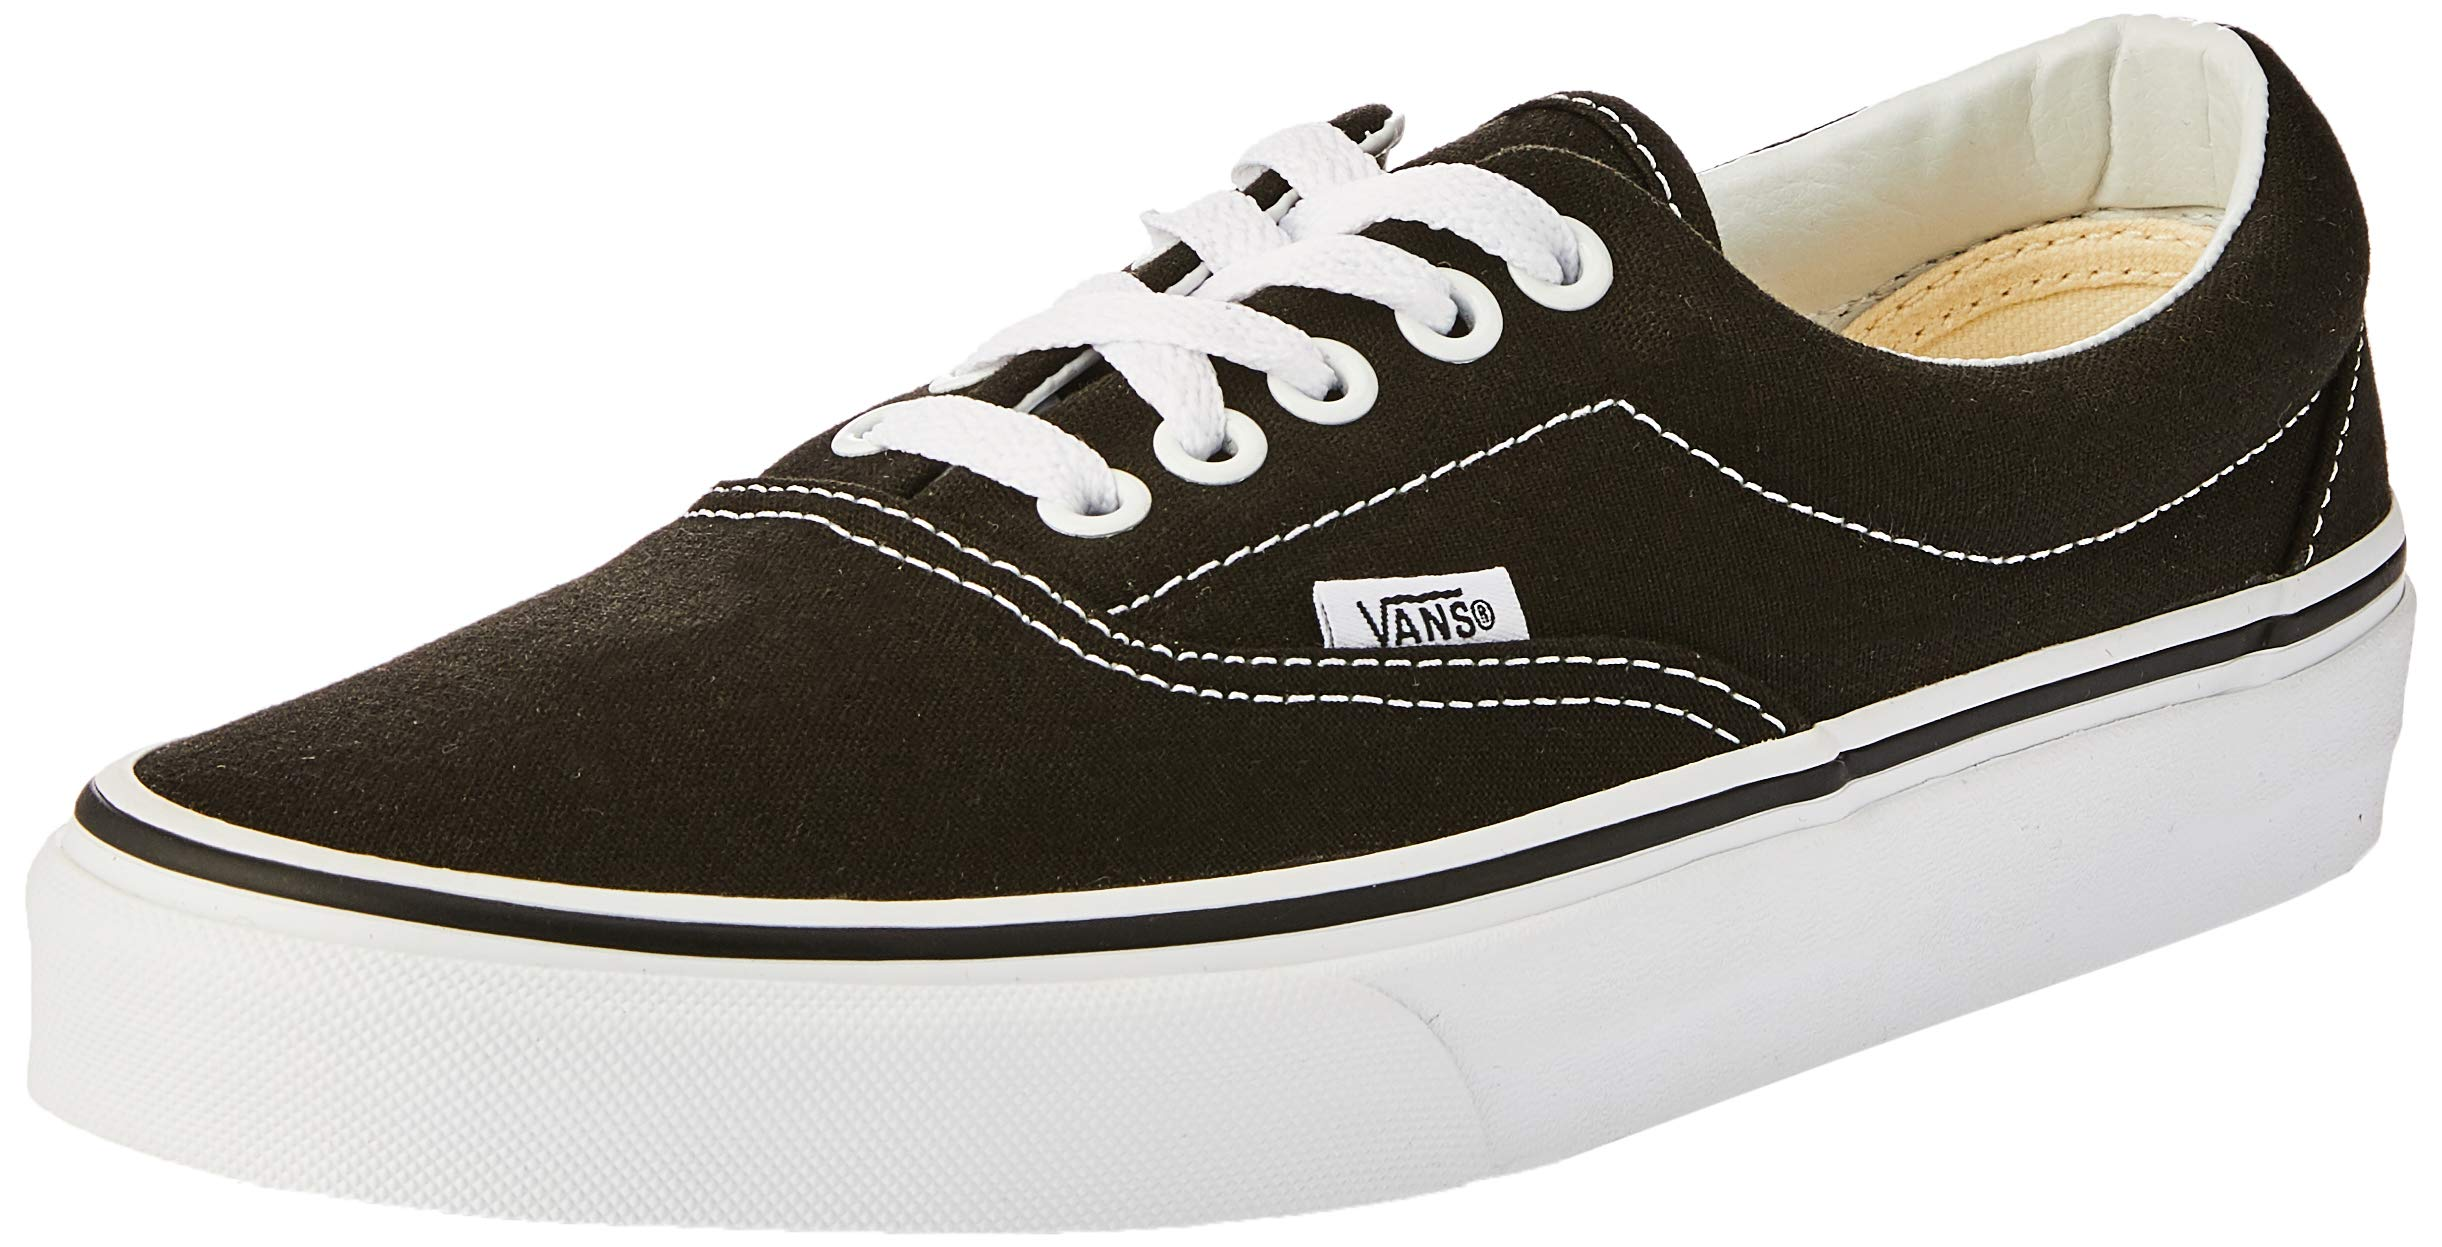 6532ad9113 Galleon - Vans VEWZNVY Unisex Era Canvas Skate Shoes